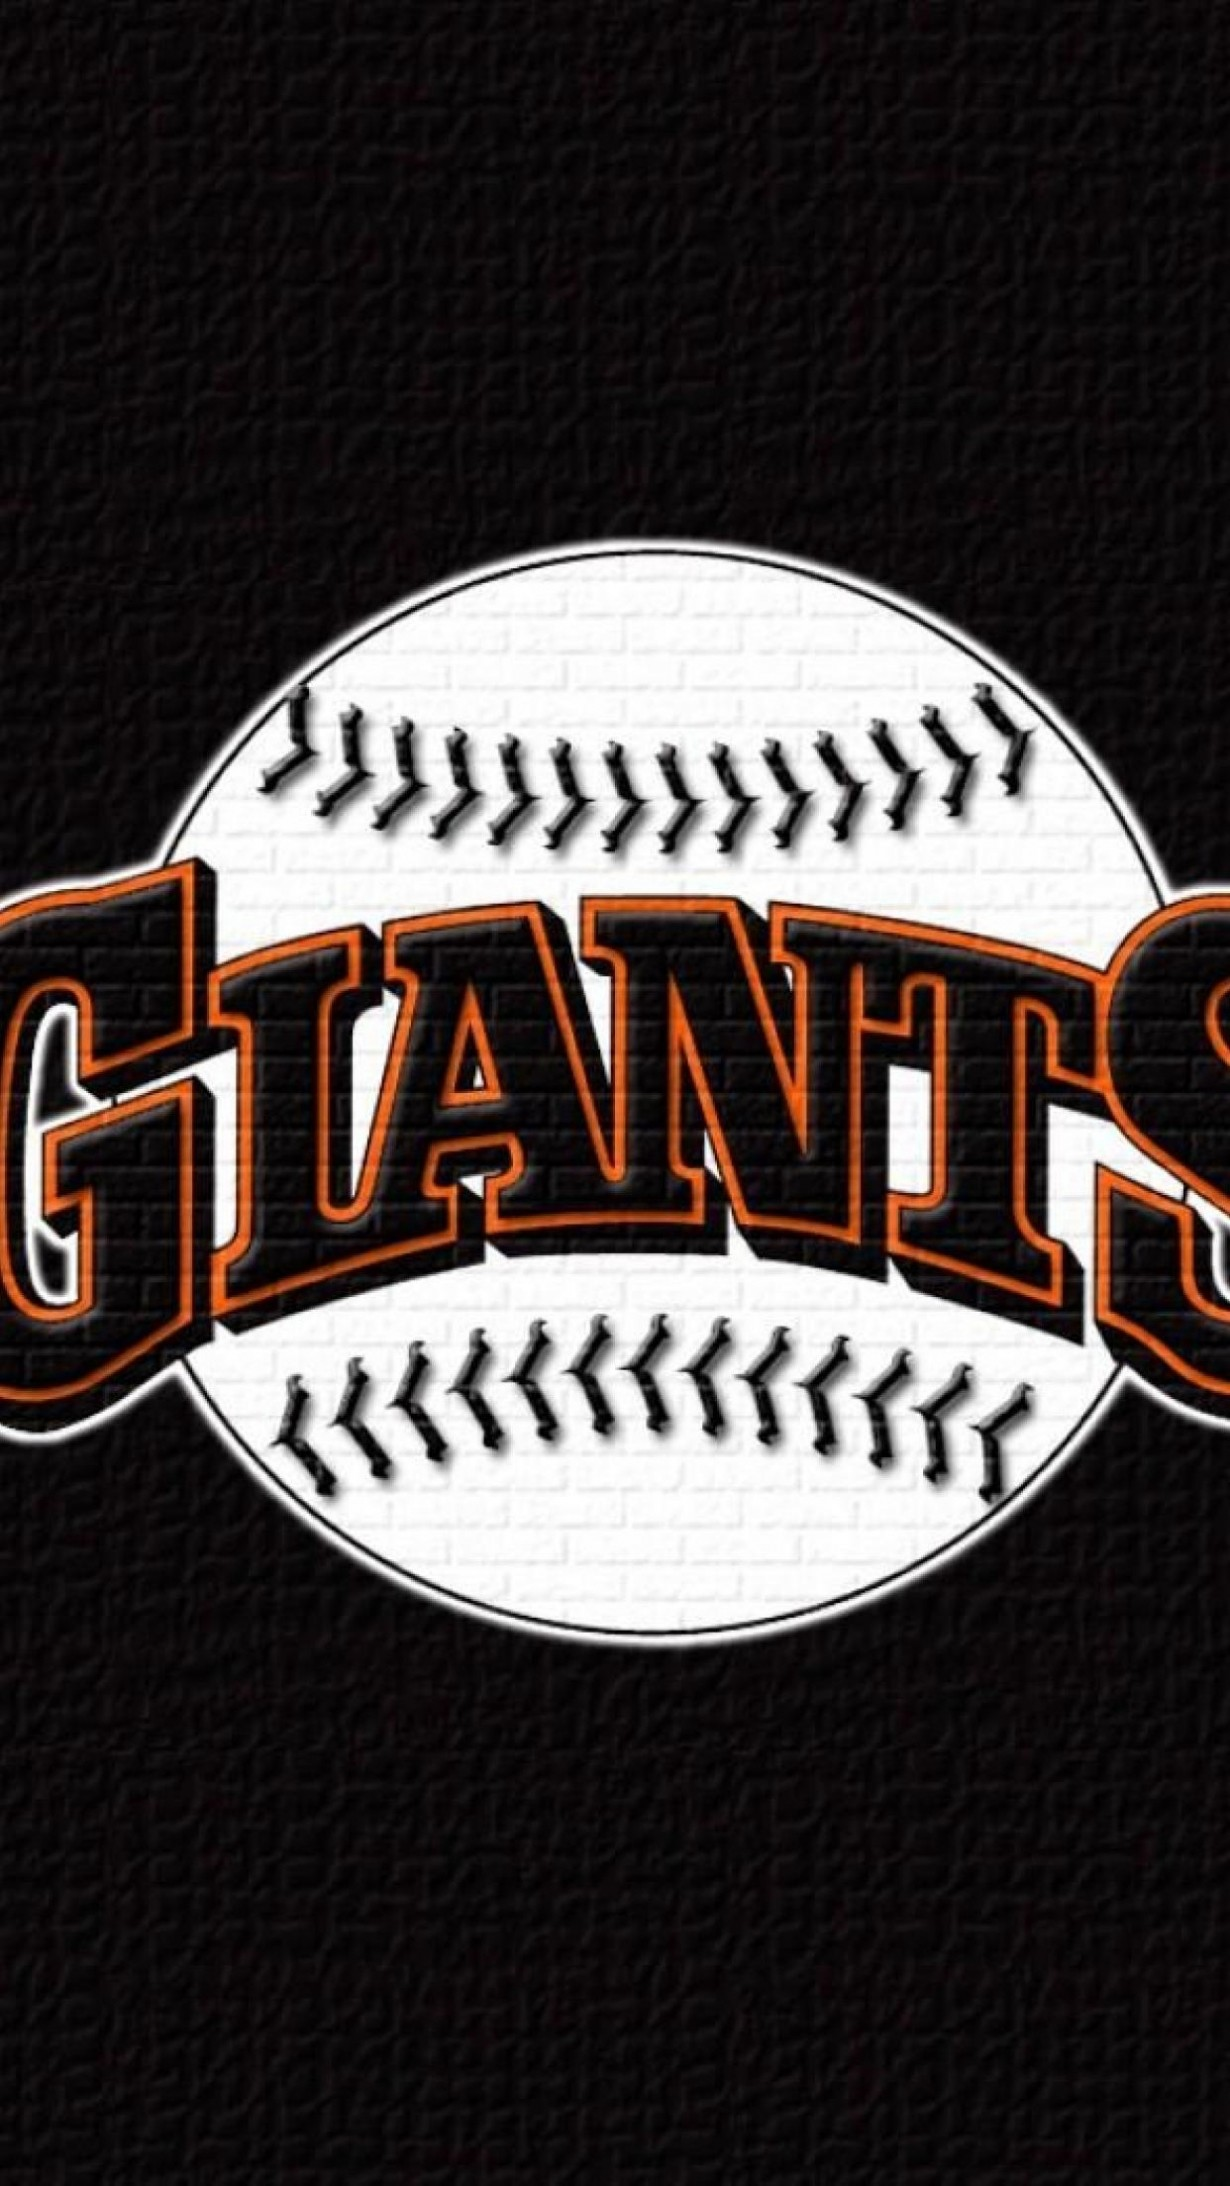 Sf giants iphone wallpaper 61 images - San francisco iphone wallpaper ...